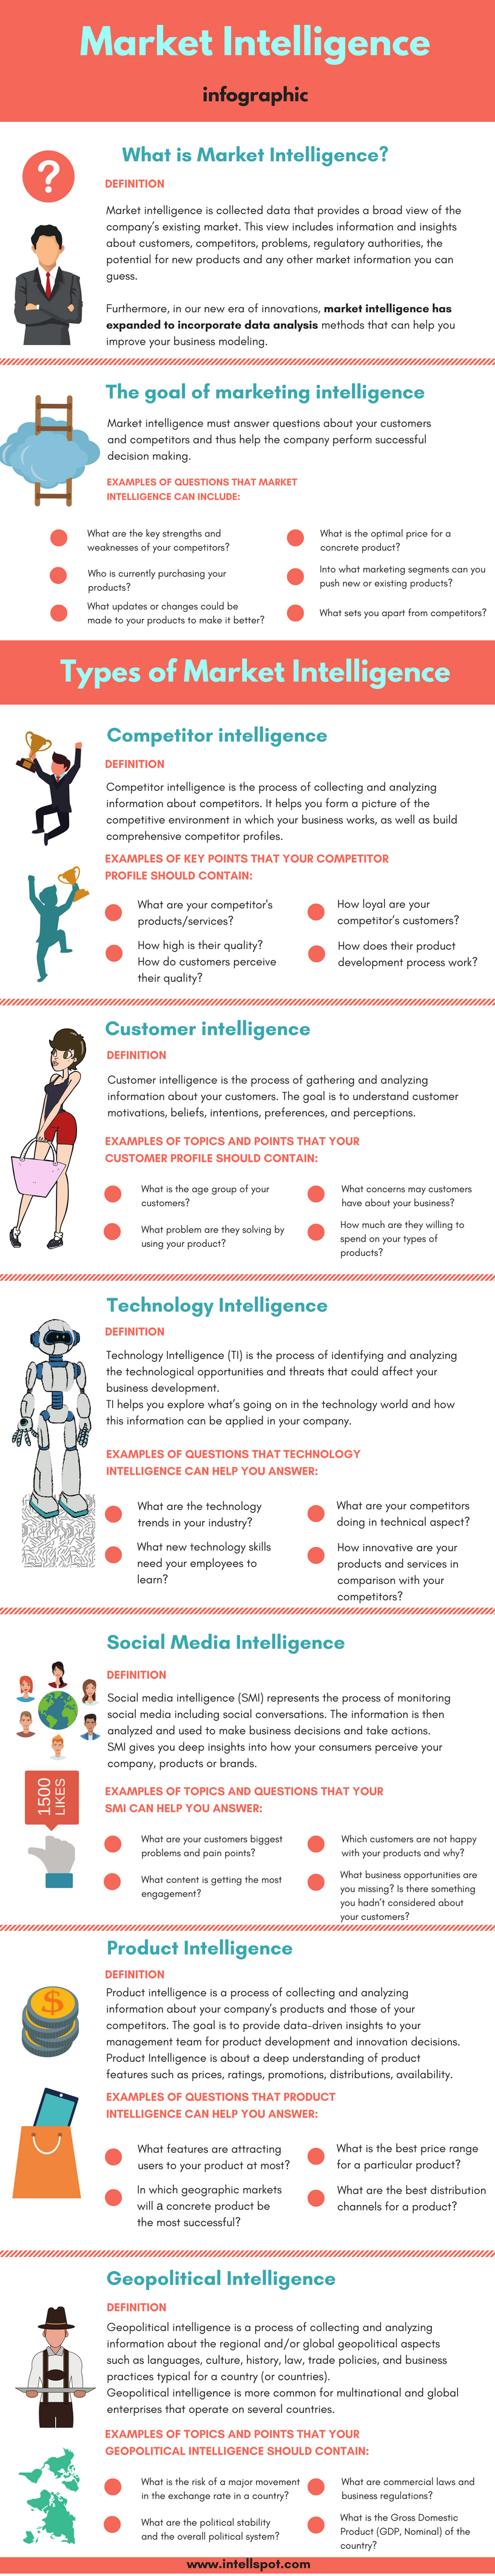 Market Intelligence Types, Definition, Meaning, Examples